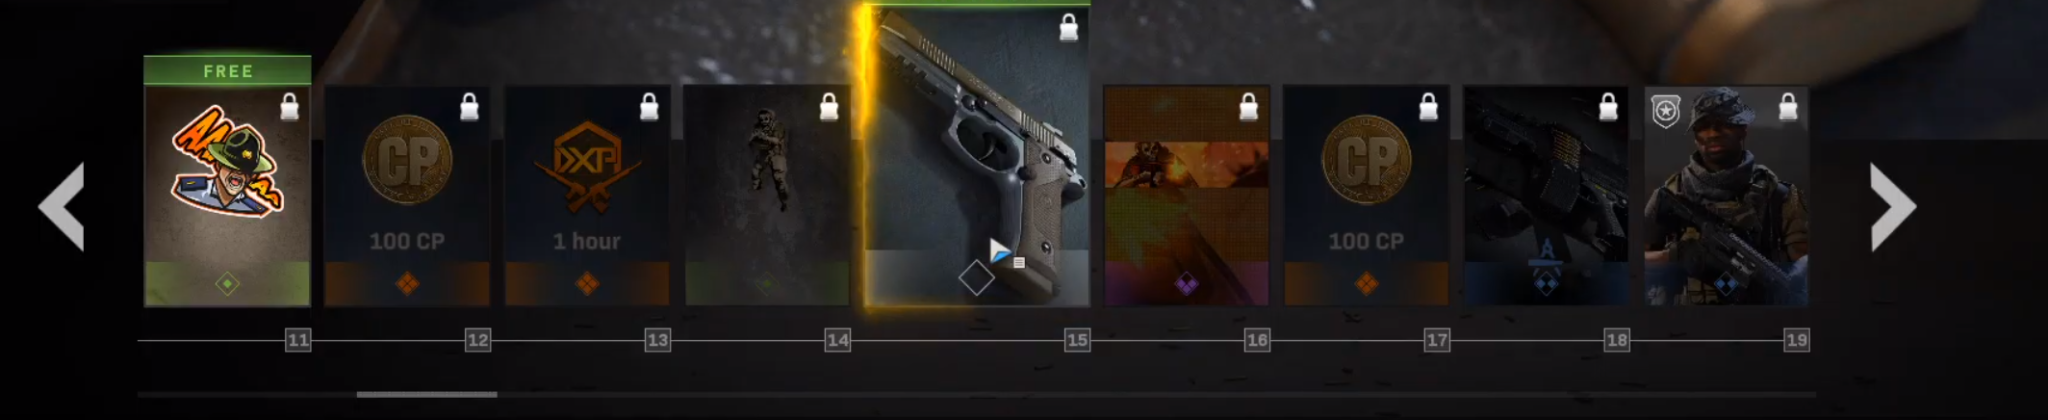 The instant items and tiers 11-19 of the Modern Warfare Season 3 Battle Pass.